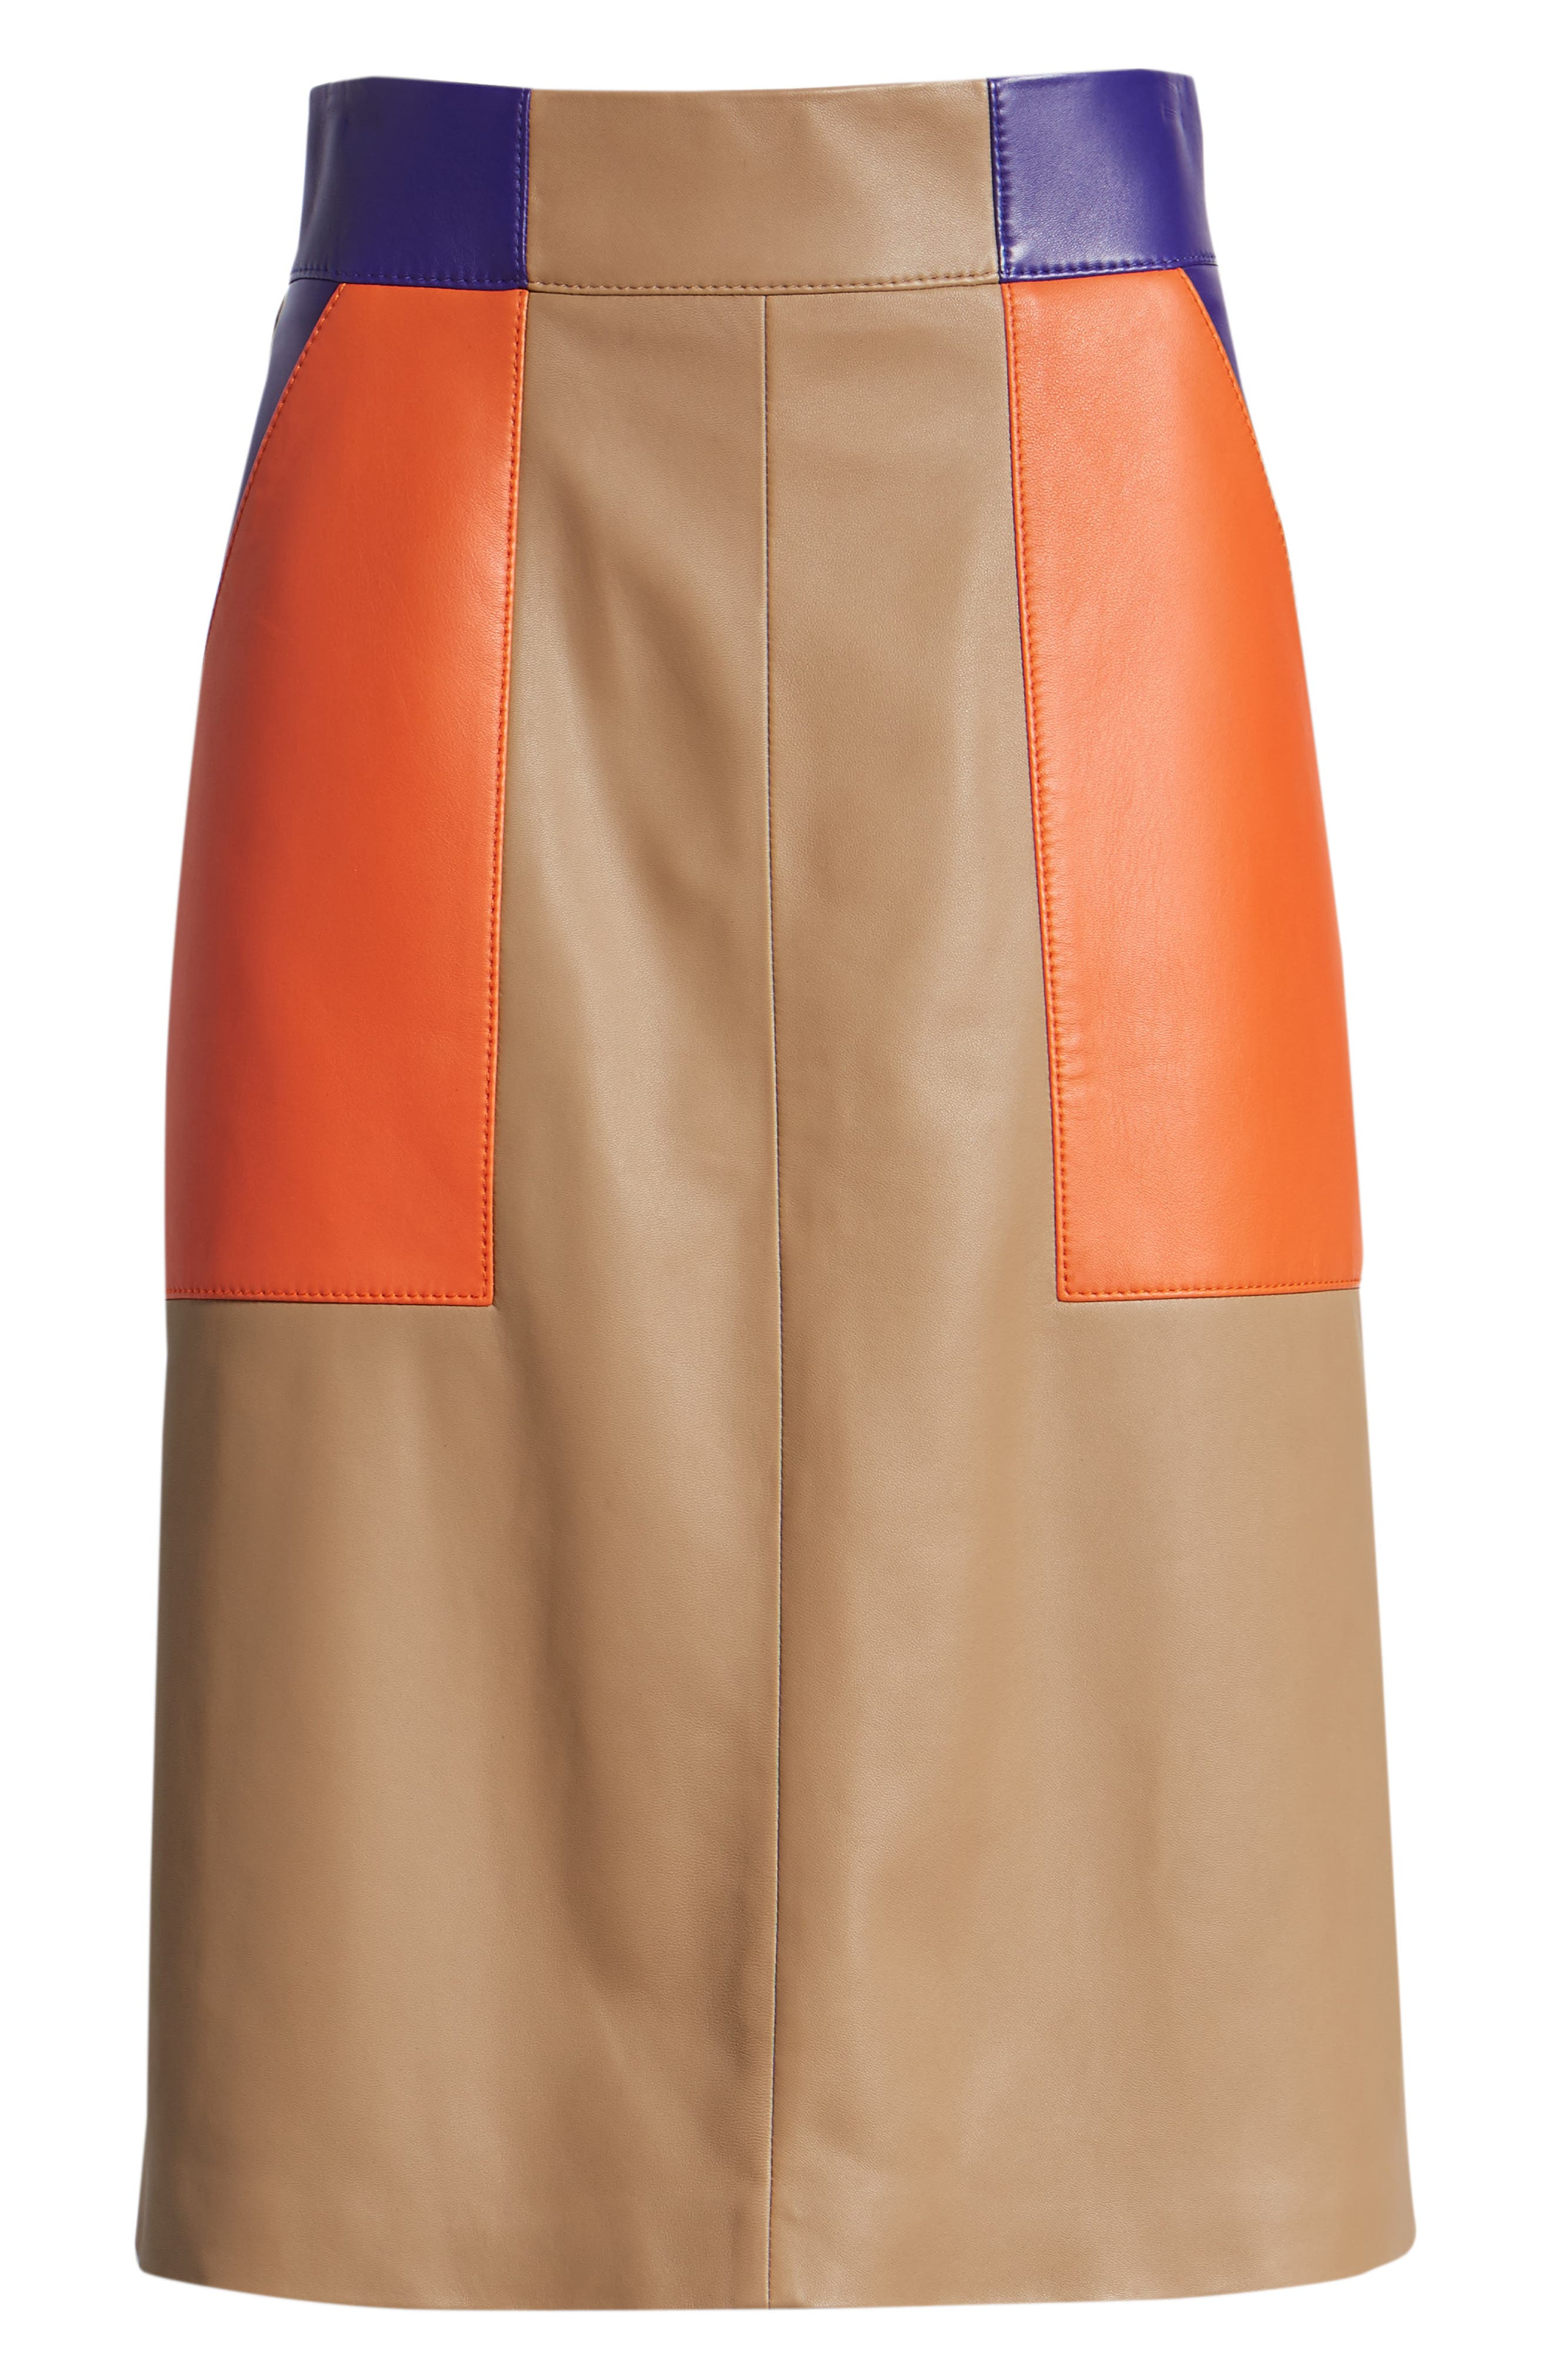 Seplea Colorblock Leather Skirt,                             Alternate thumbnail 6, color,                             Warm Clay Fantasy